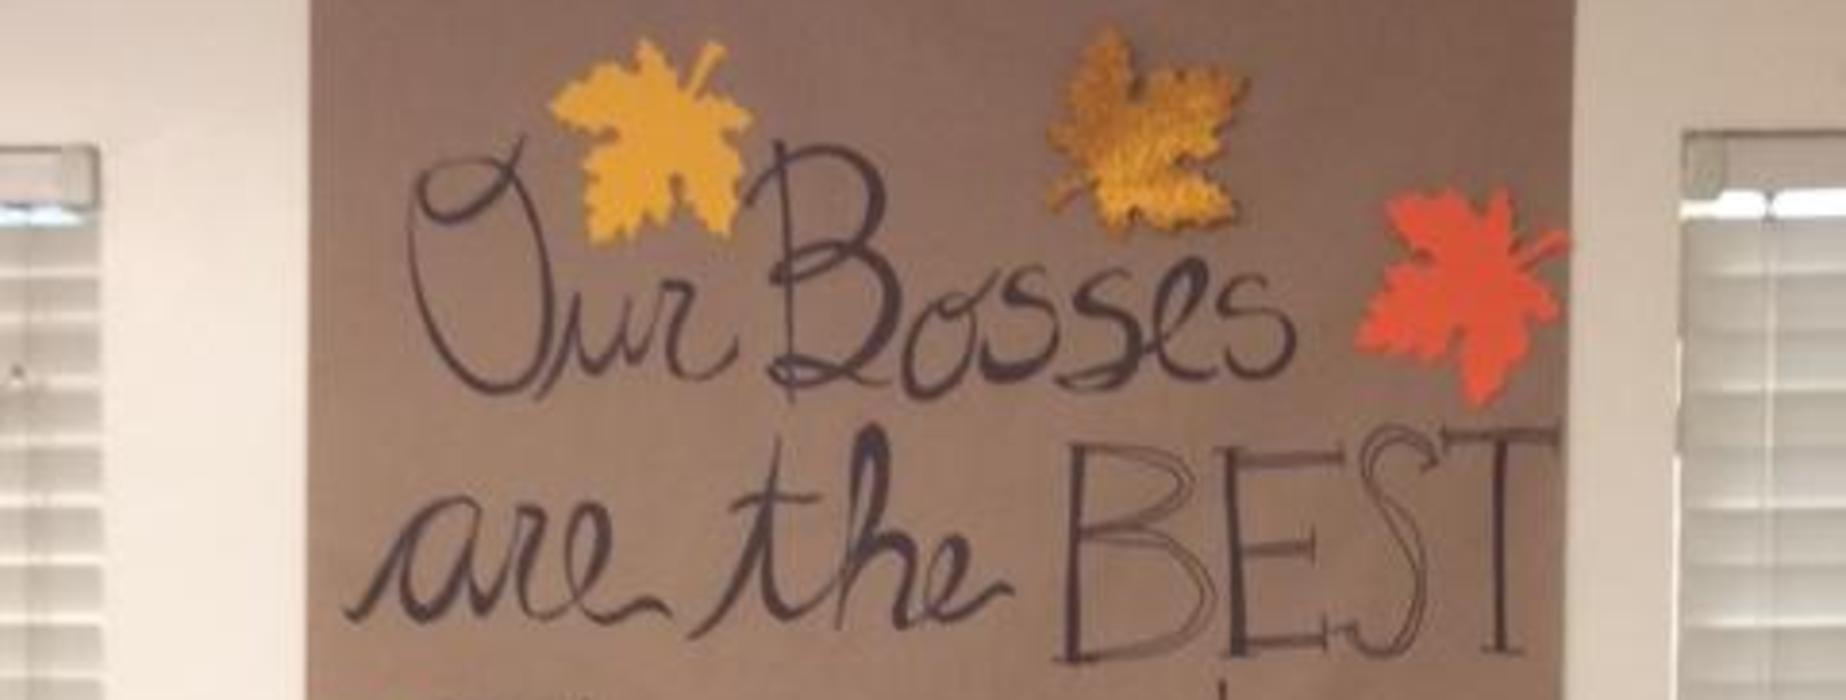 Our Bosses are the Best Banner